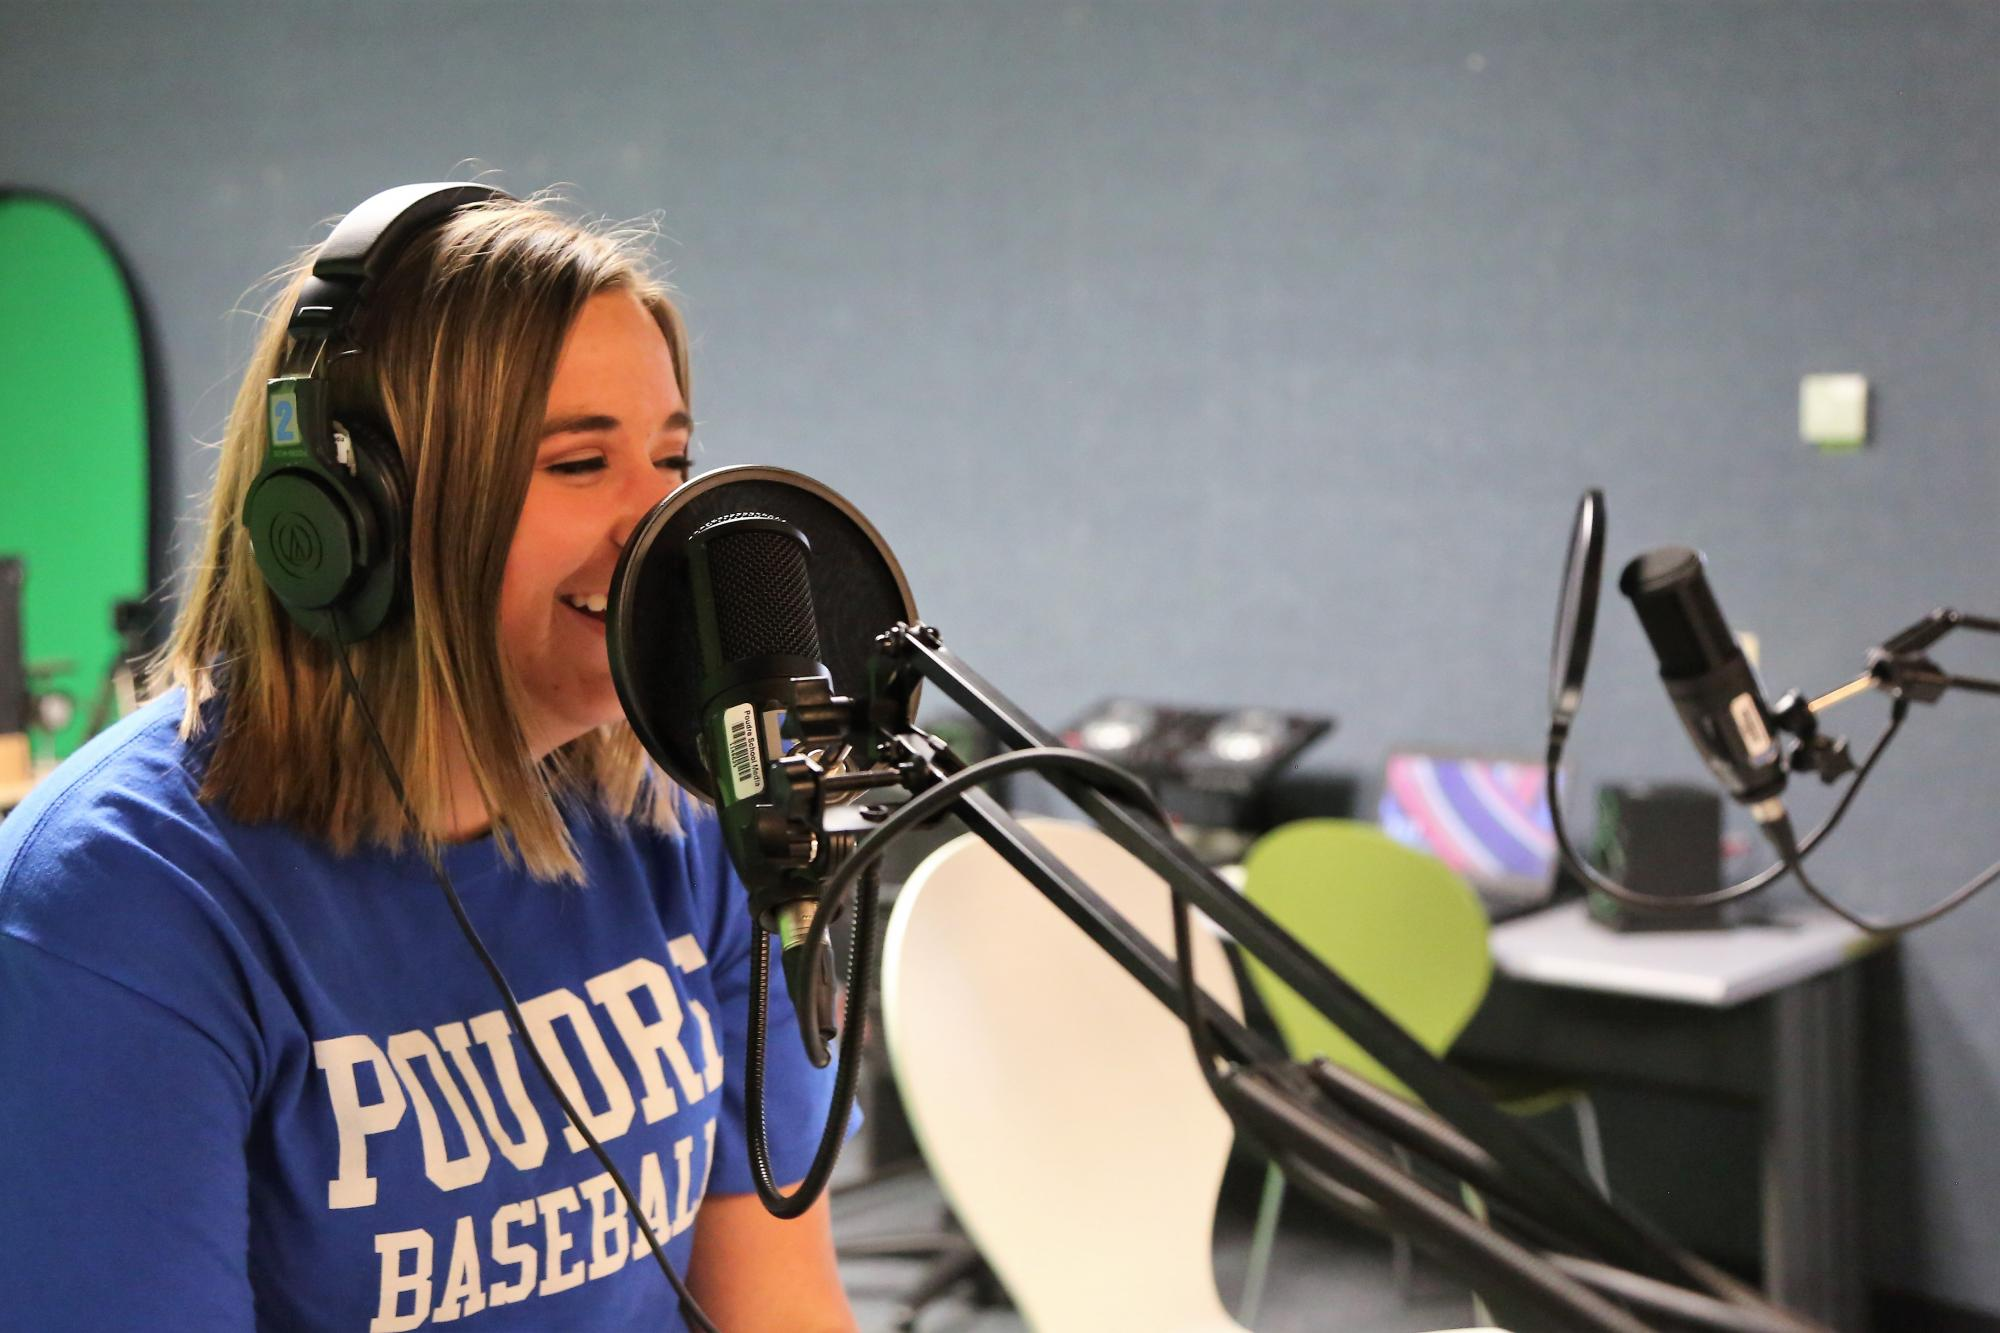 A female PHS student uses recording equipment in the PHS MakerSpace area.